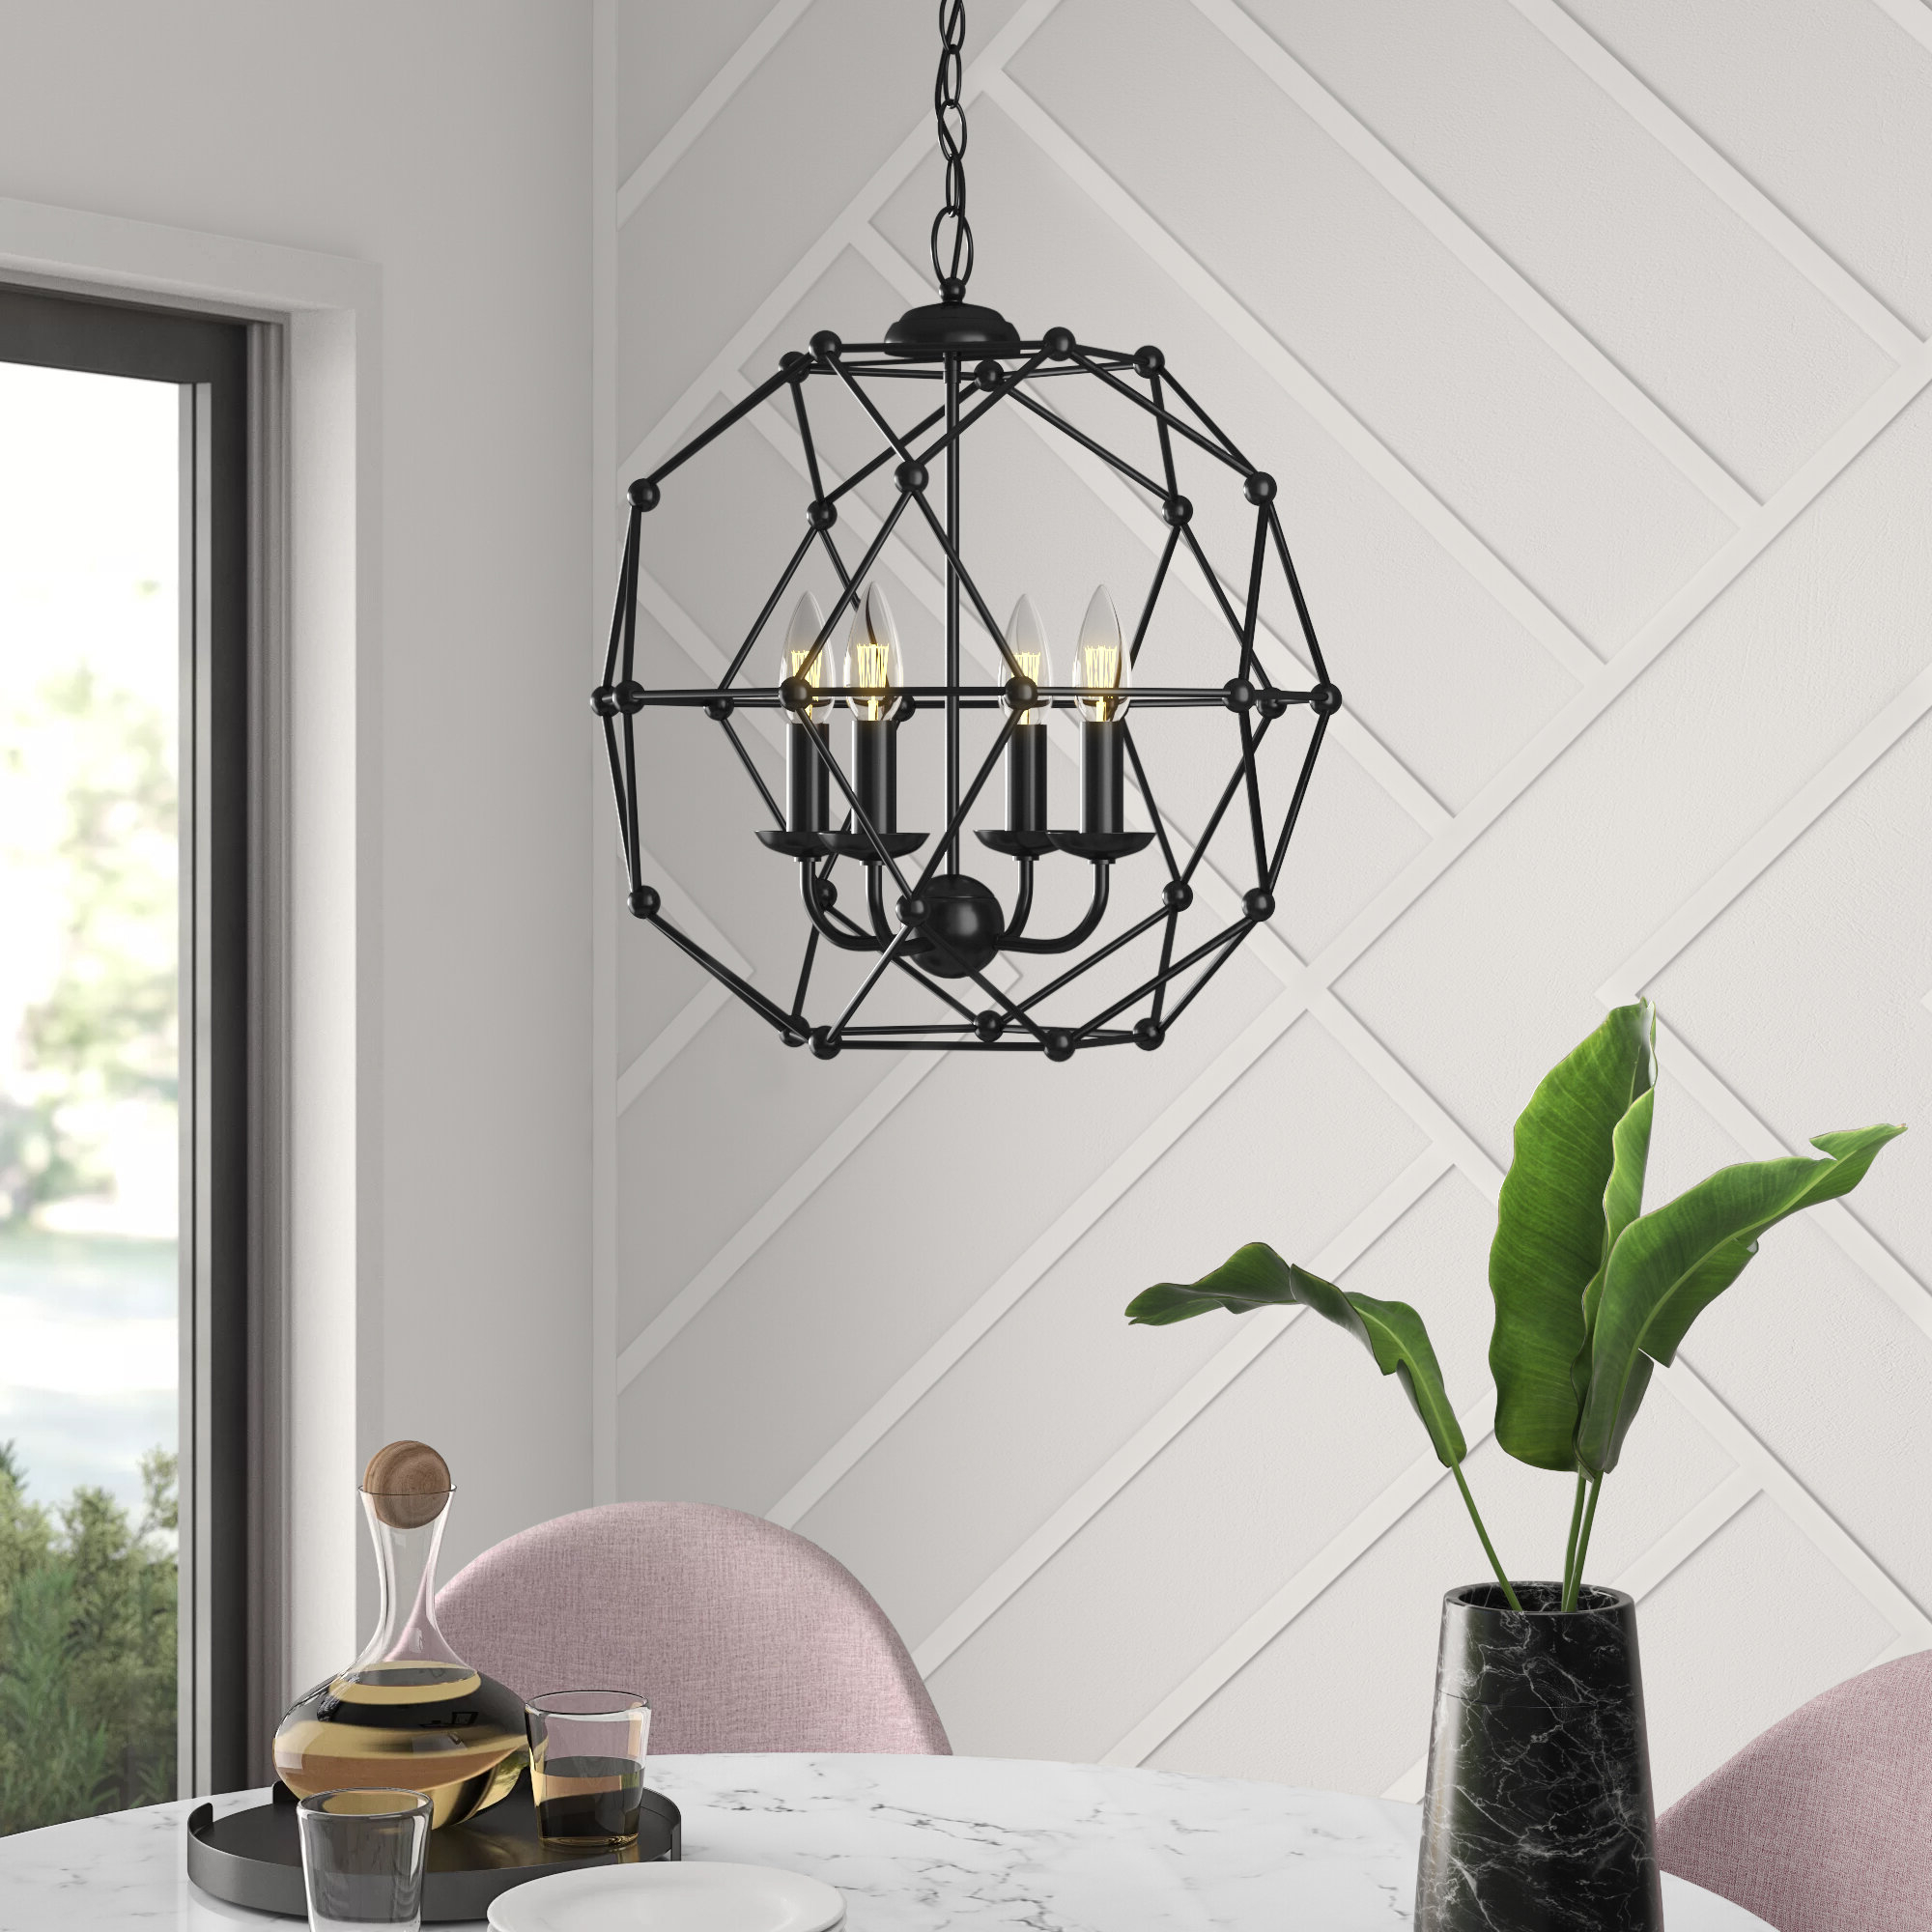 2020 Cavanagh 4-Light Geometric Chandelier with regard to Kaycee 4-Light Geometric Chandeliers